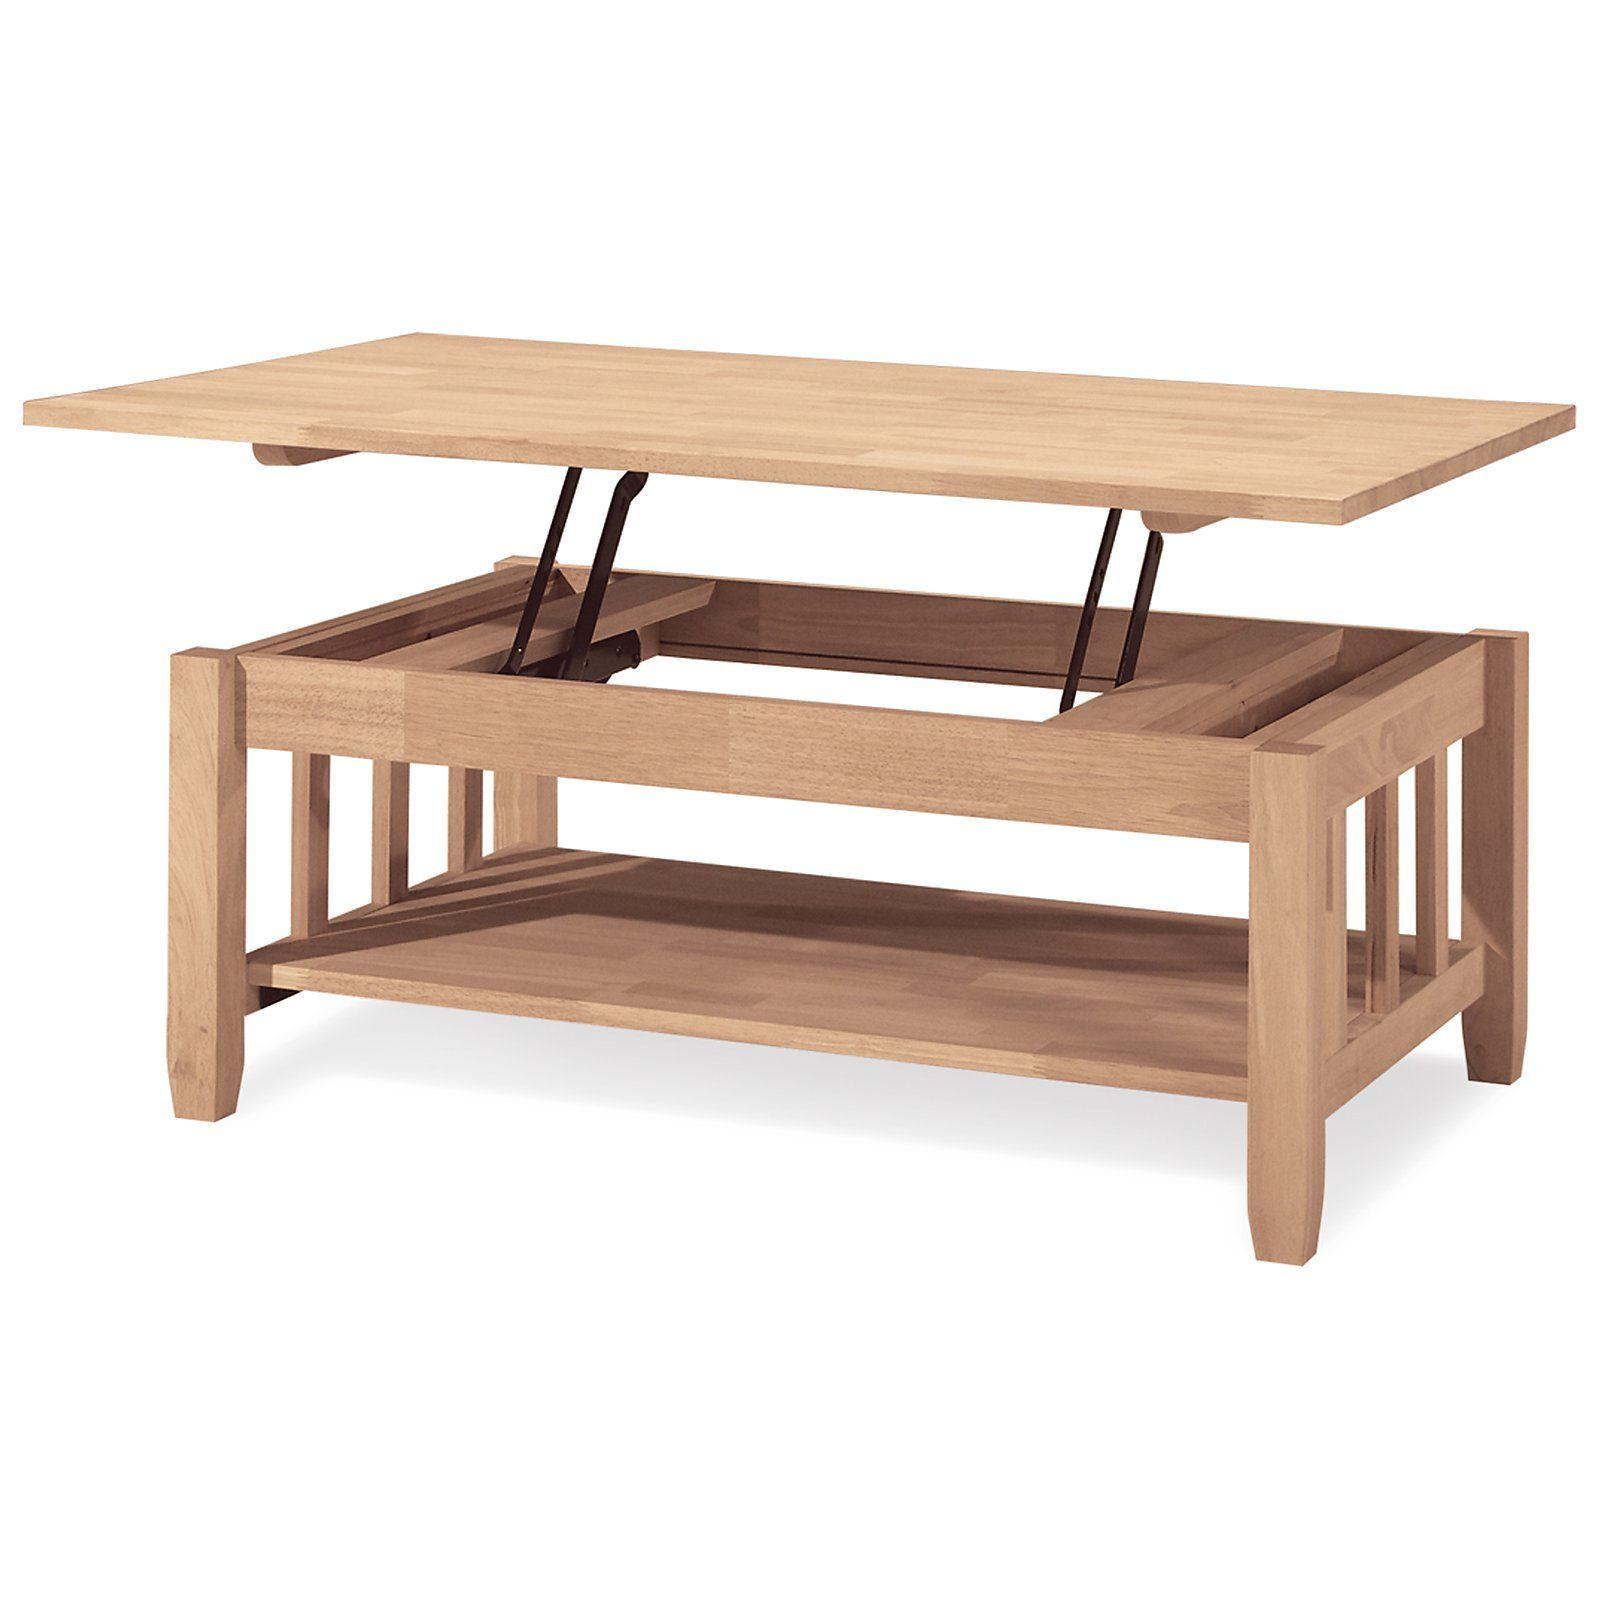 Alluring Unplished Oak Wood Lift Top Living Room Rectangle Coffee Lift Top Coffee Table Plans Free Turner Hardwood Coffee Tables Tall Coffee Table Coffee Table [ 1600 x 1600 Pixel ]